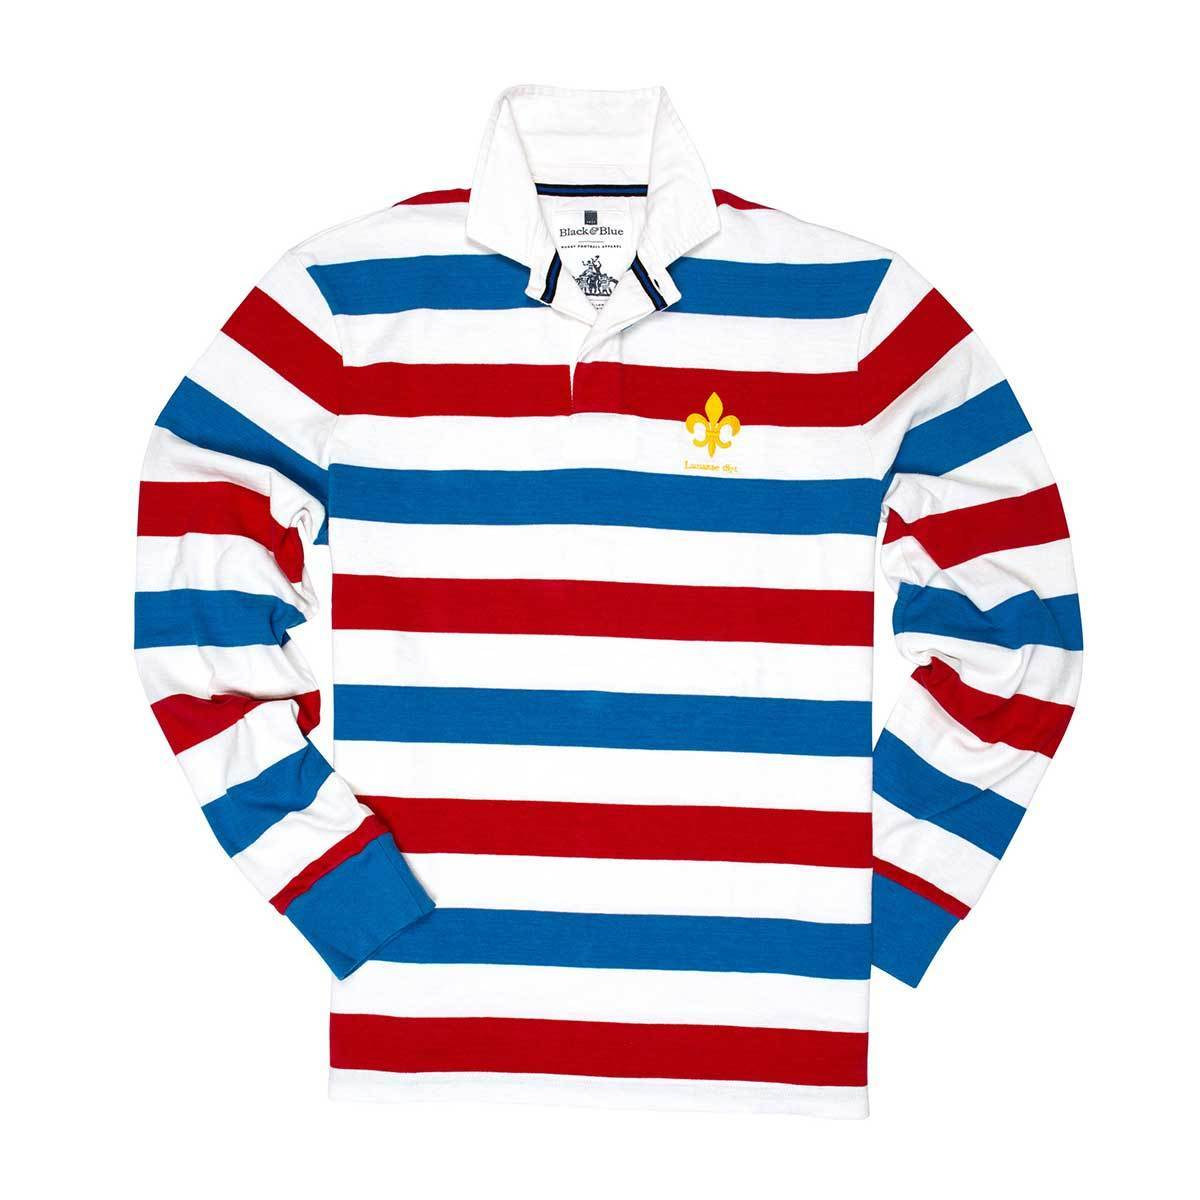 Vintage, Classic Cotton Rugby Shirt | Black & Blue 1871 | Lausanne 1871 Rugby Shirt